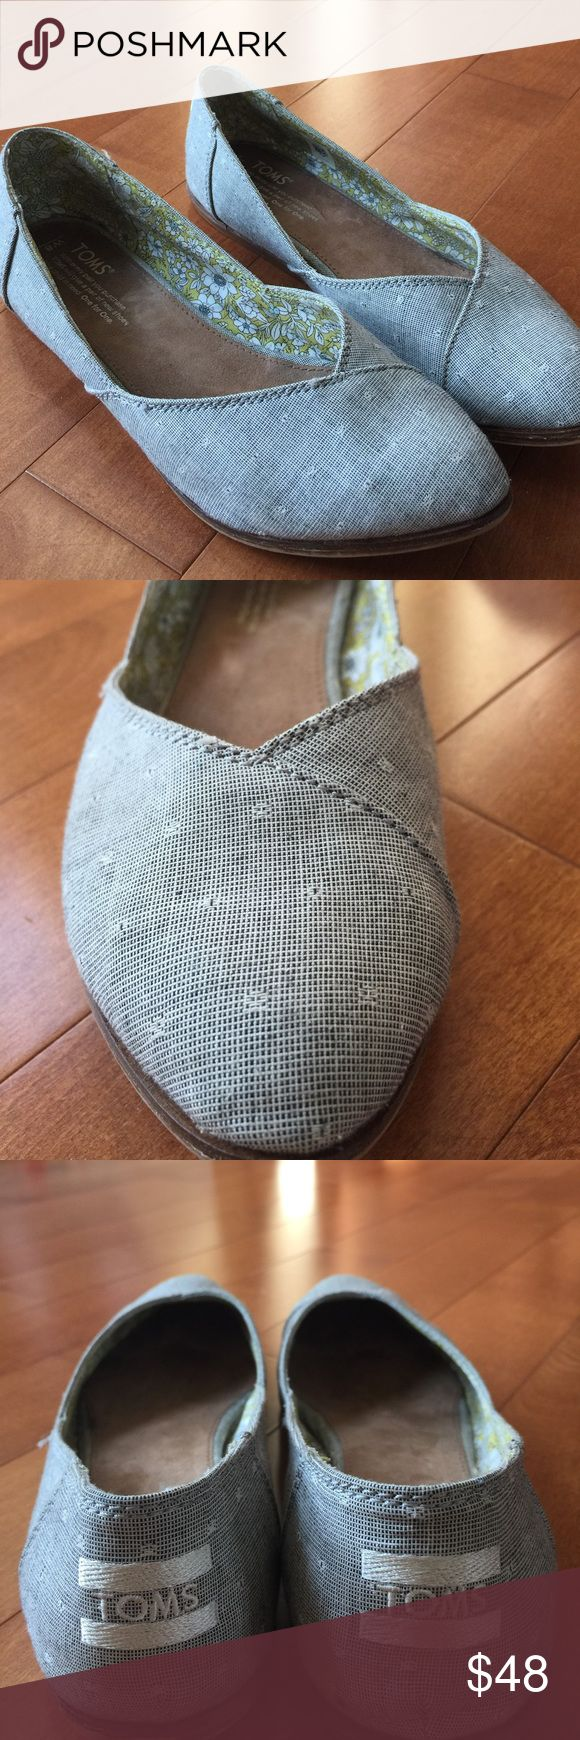 Toms Jutti sz8 Stitch Fix RARE PRINT shoe Toms brand Stitch Fix Jutti sz 8 LIMITED EDITION RARE PRINT shoe.  Perfect style and for summer!  Would look great paired with shorts or cropped jeans.  Comes from pet free and smoke free home. TOMS Shoes Flats & Loafers